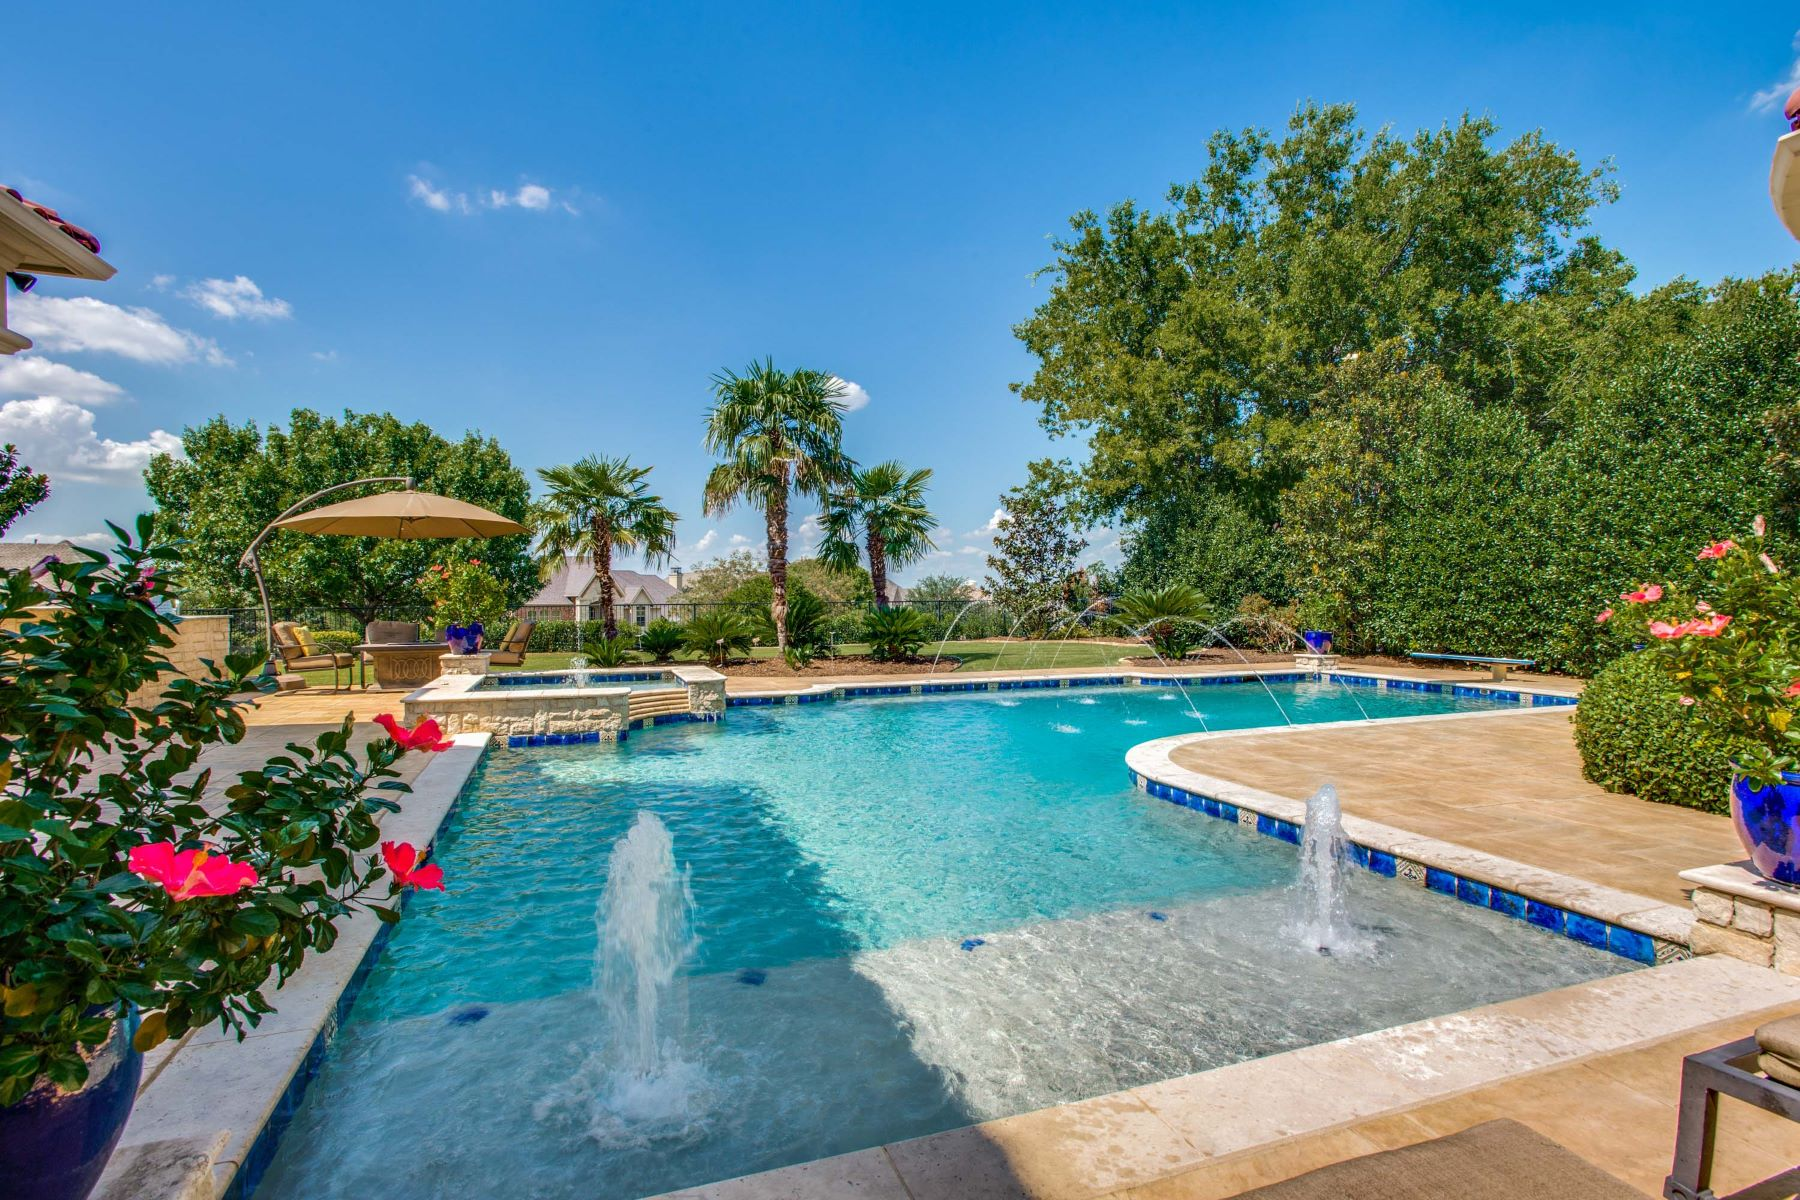 Single Family Homes for Sale at Starwood! 5173 Buena Vista Drive Frisco, Texas 75034 United States